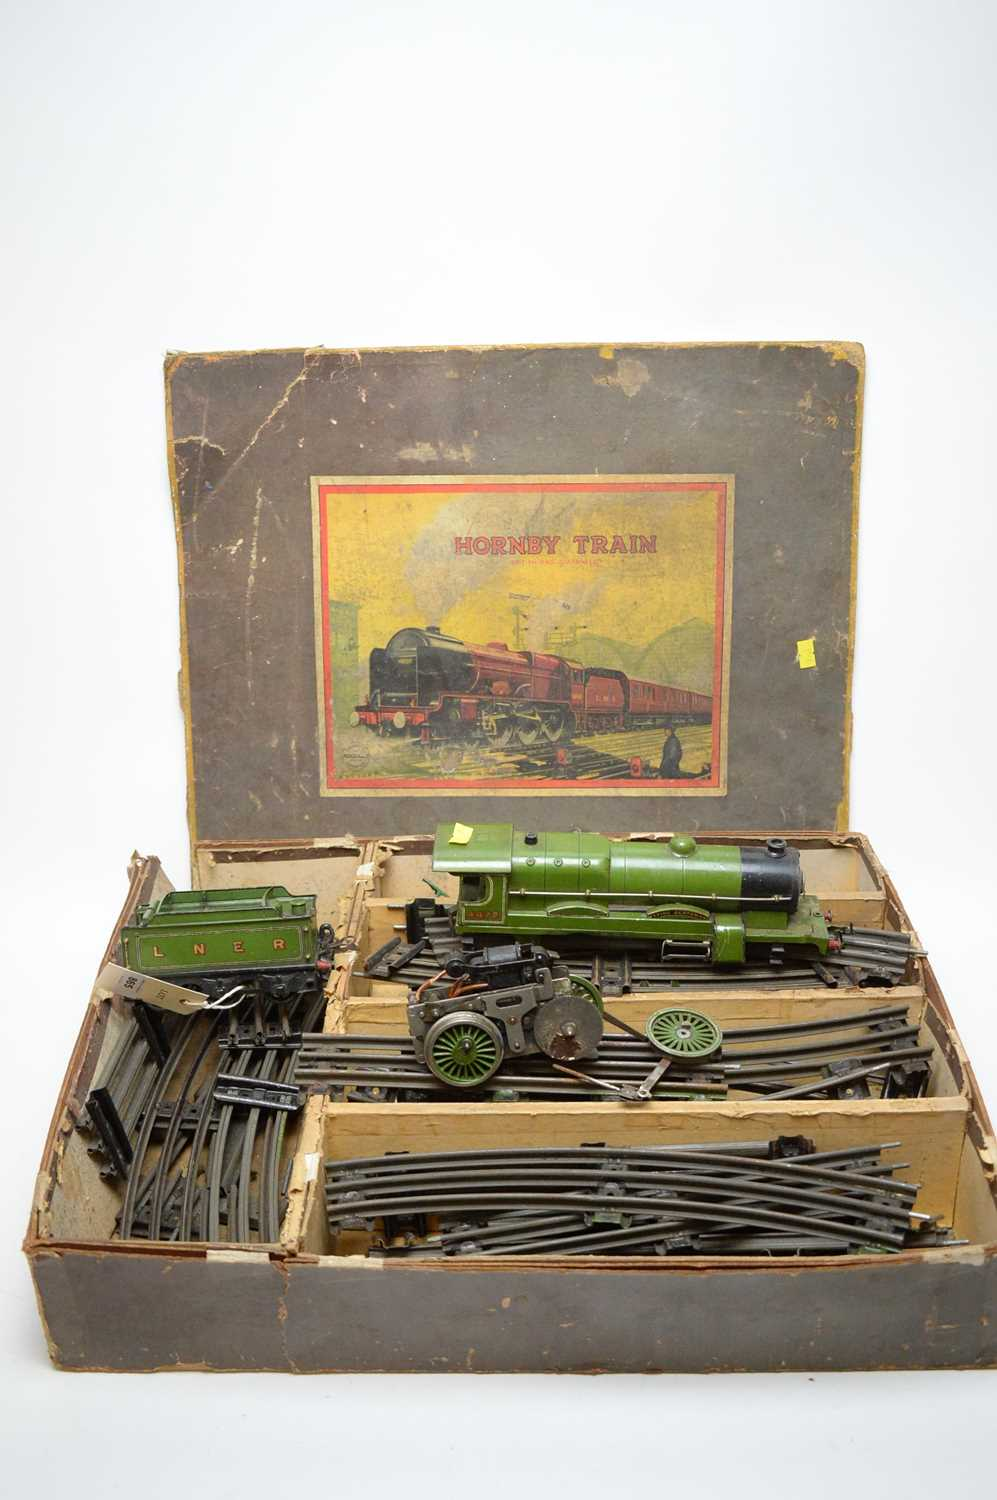 Lot 865 - Hornby 0-gauge electric part train set; and other related items.